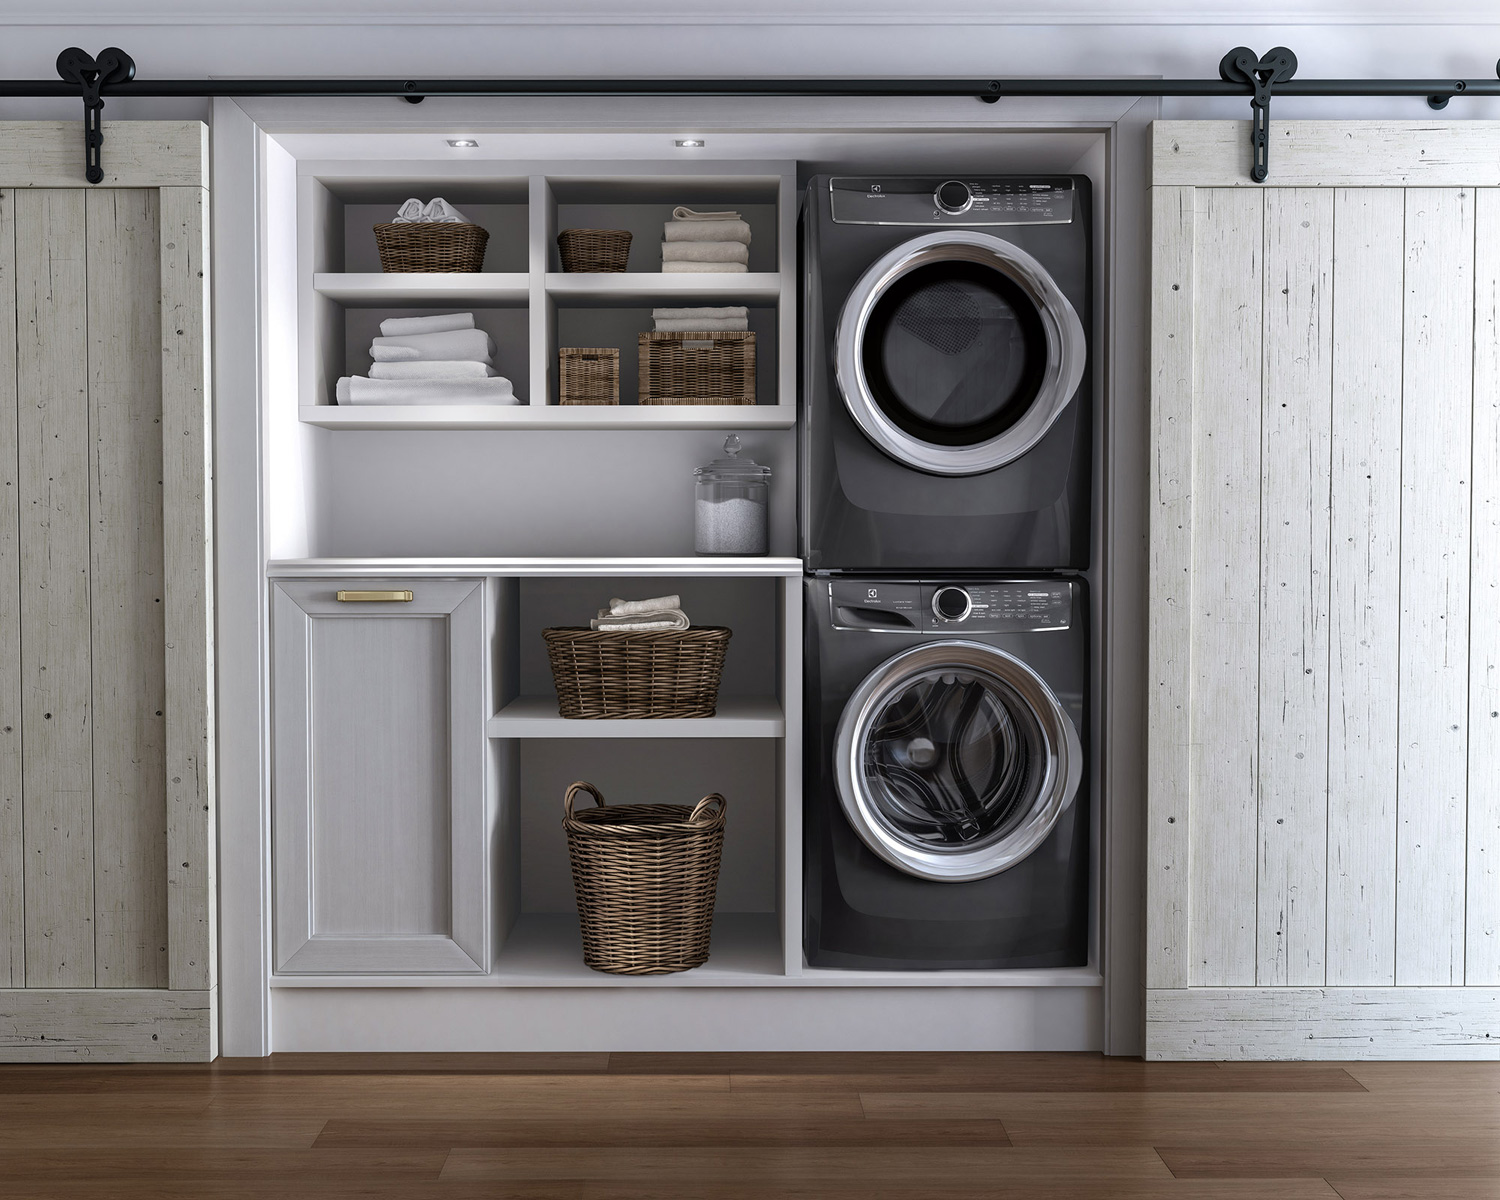 Miele stackable washer dryer ventless - Stacked Washer Dryer Transform The Way You Do Laundry